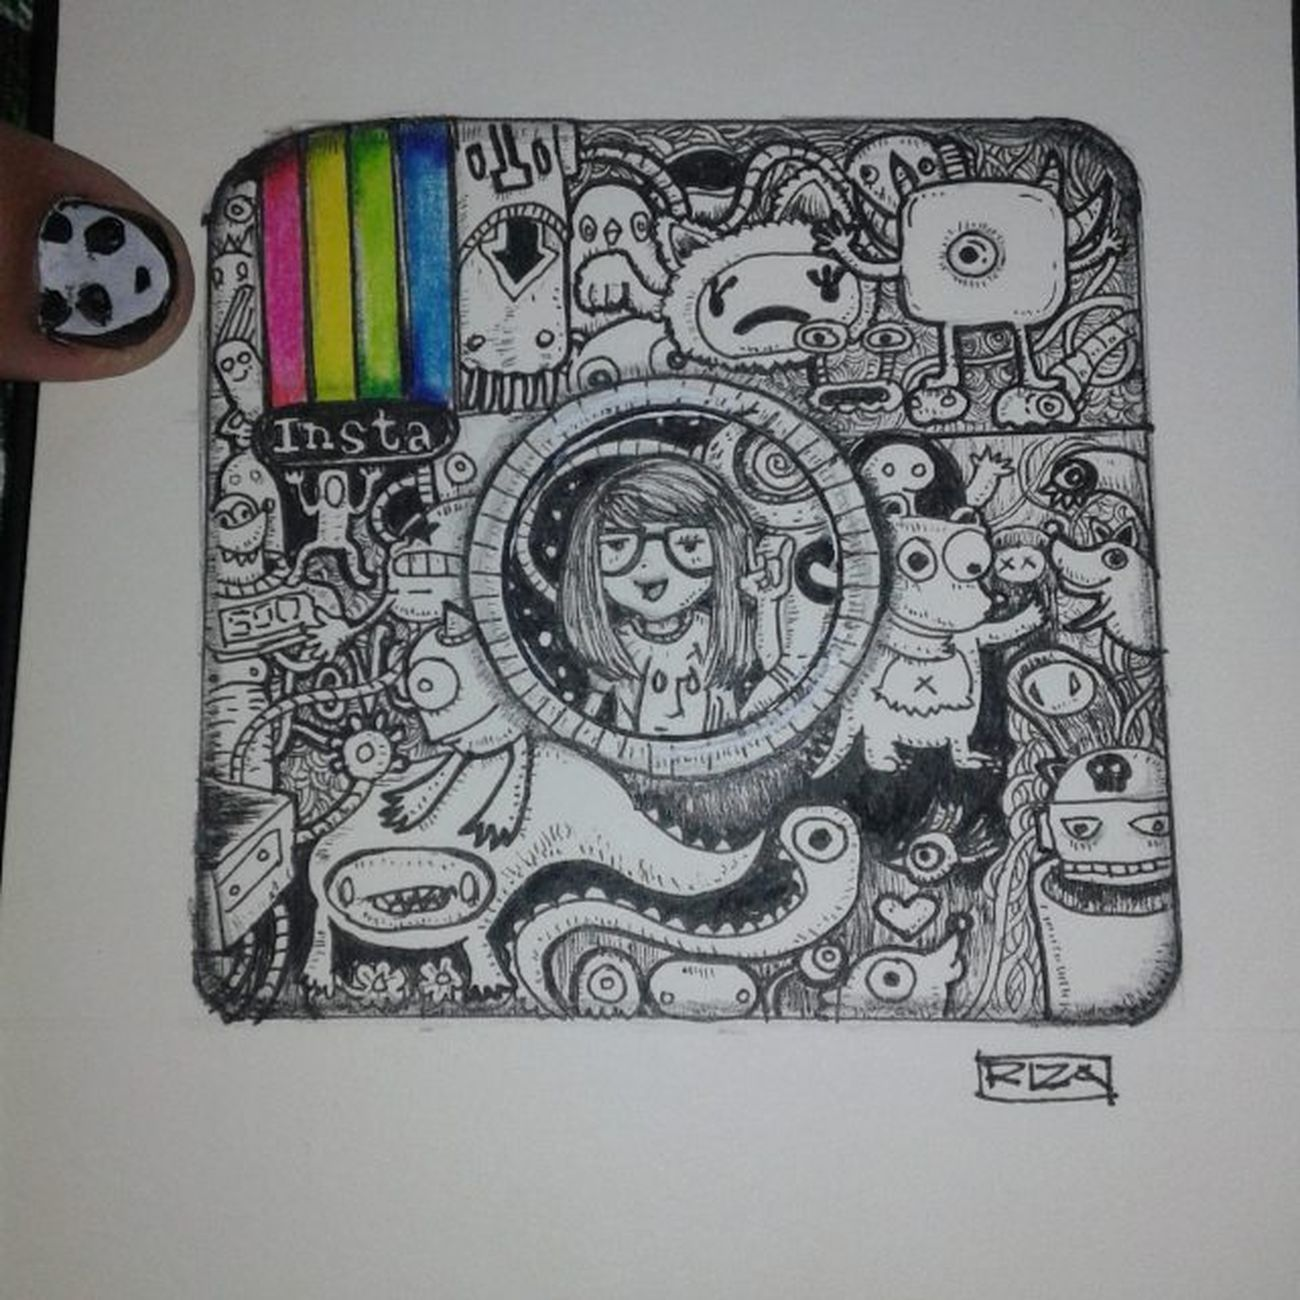 doodle before dawn 😂 Art907_ Justartshares Justartspiration Imaginationarts Official_art_page Arts_help Artworld_share Tacart Theartslovers Featuregalaxy Spotlightonartists Art_spotlight Goodartguide Artmg03 Art_cola Theartcommunity Arts_gallery Dailyarts Worldofartists Phanasu Sketchbook Pen Drawing Illustration Dailyartistiq inktober 10 _talent